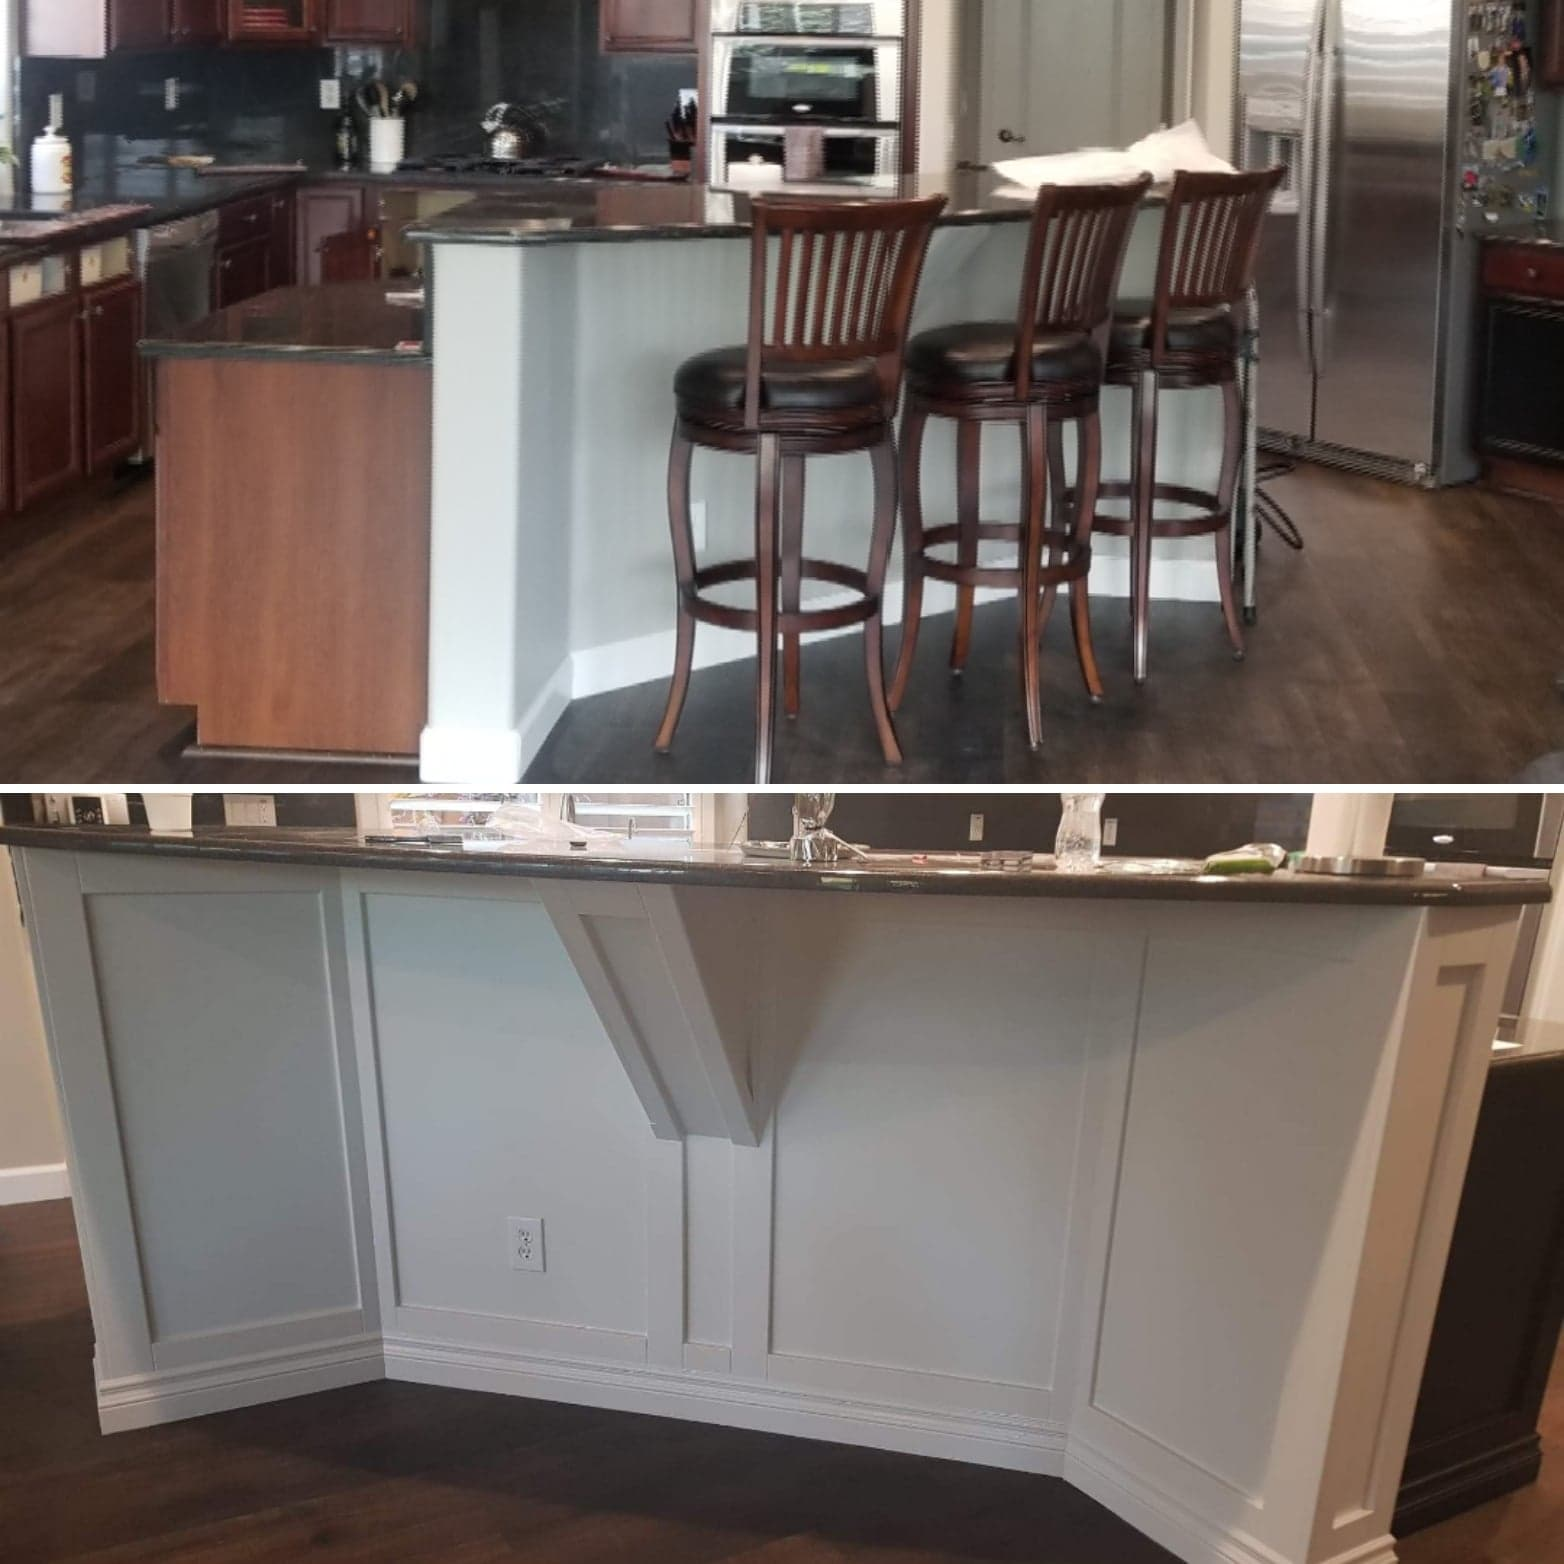 Before and after photo of kitchen island trim work